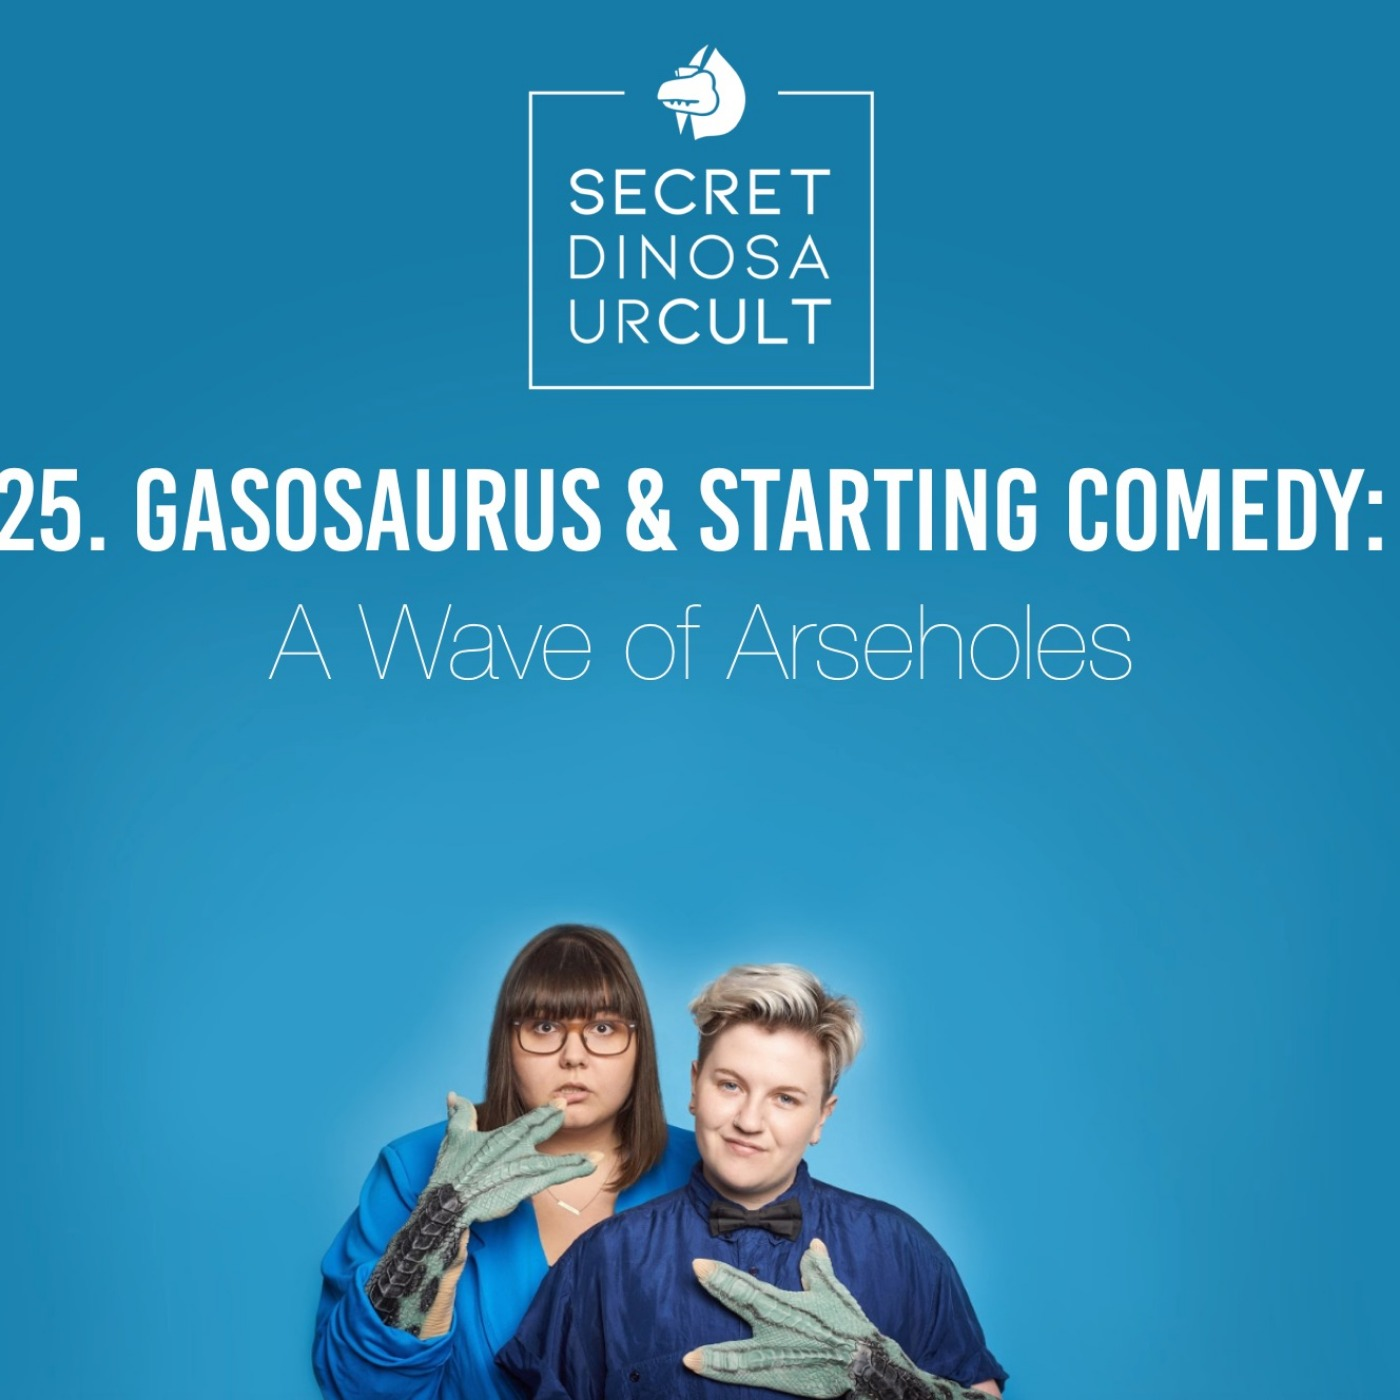 25. Gasosaurus & Starting Comedy: A Wave of Arseholes